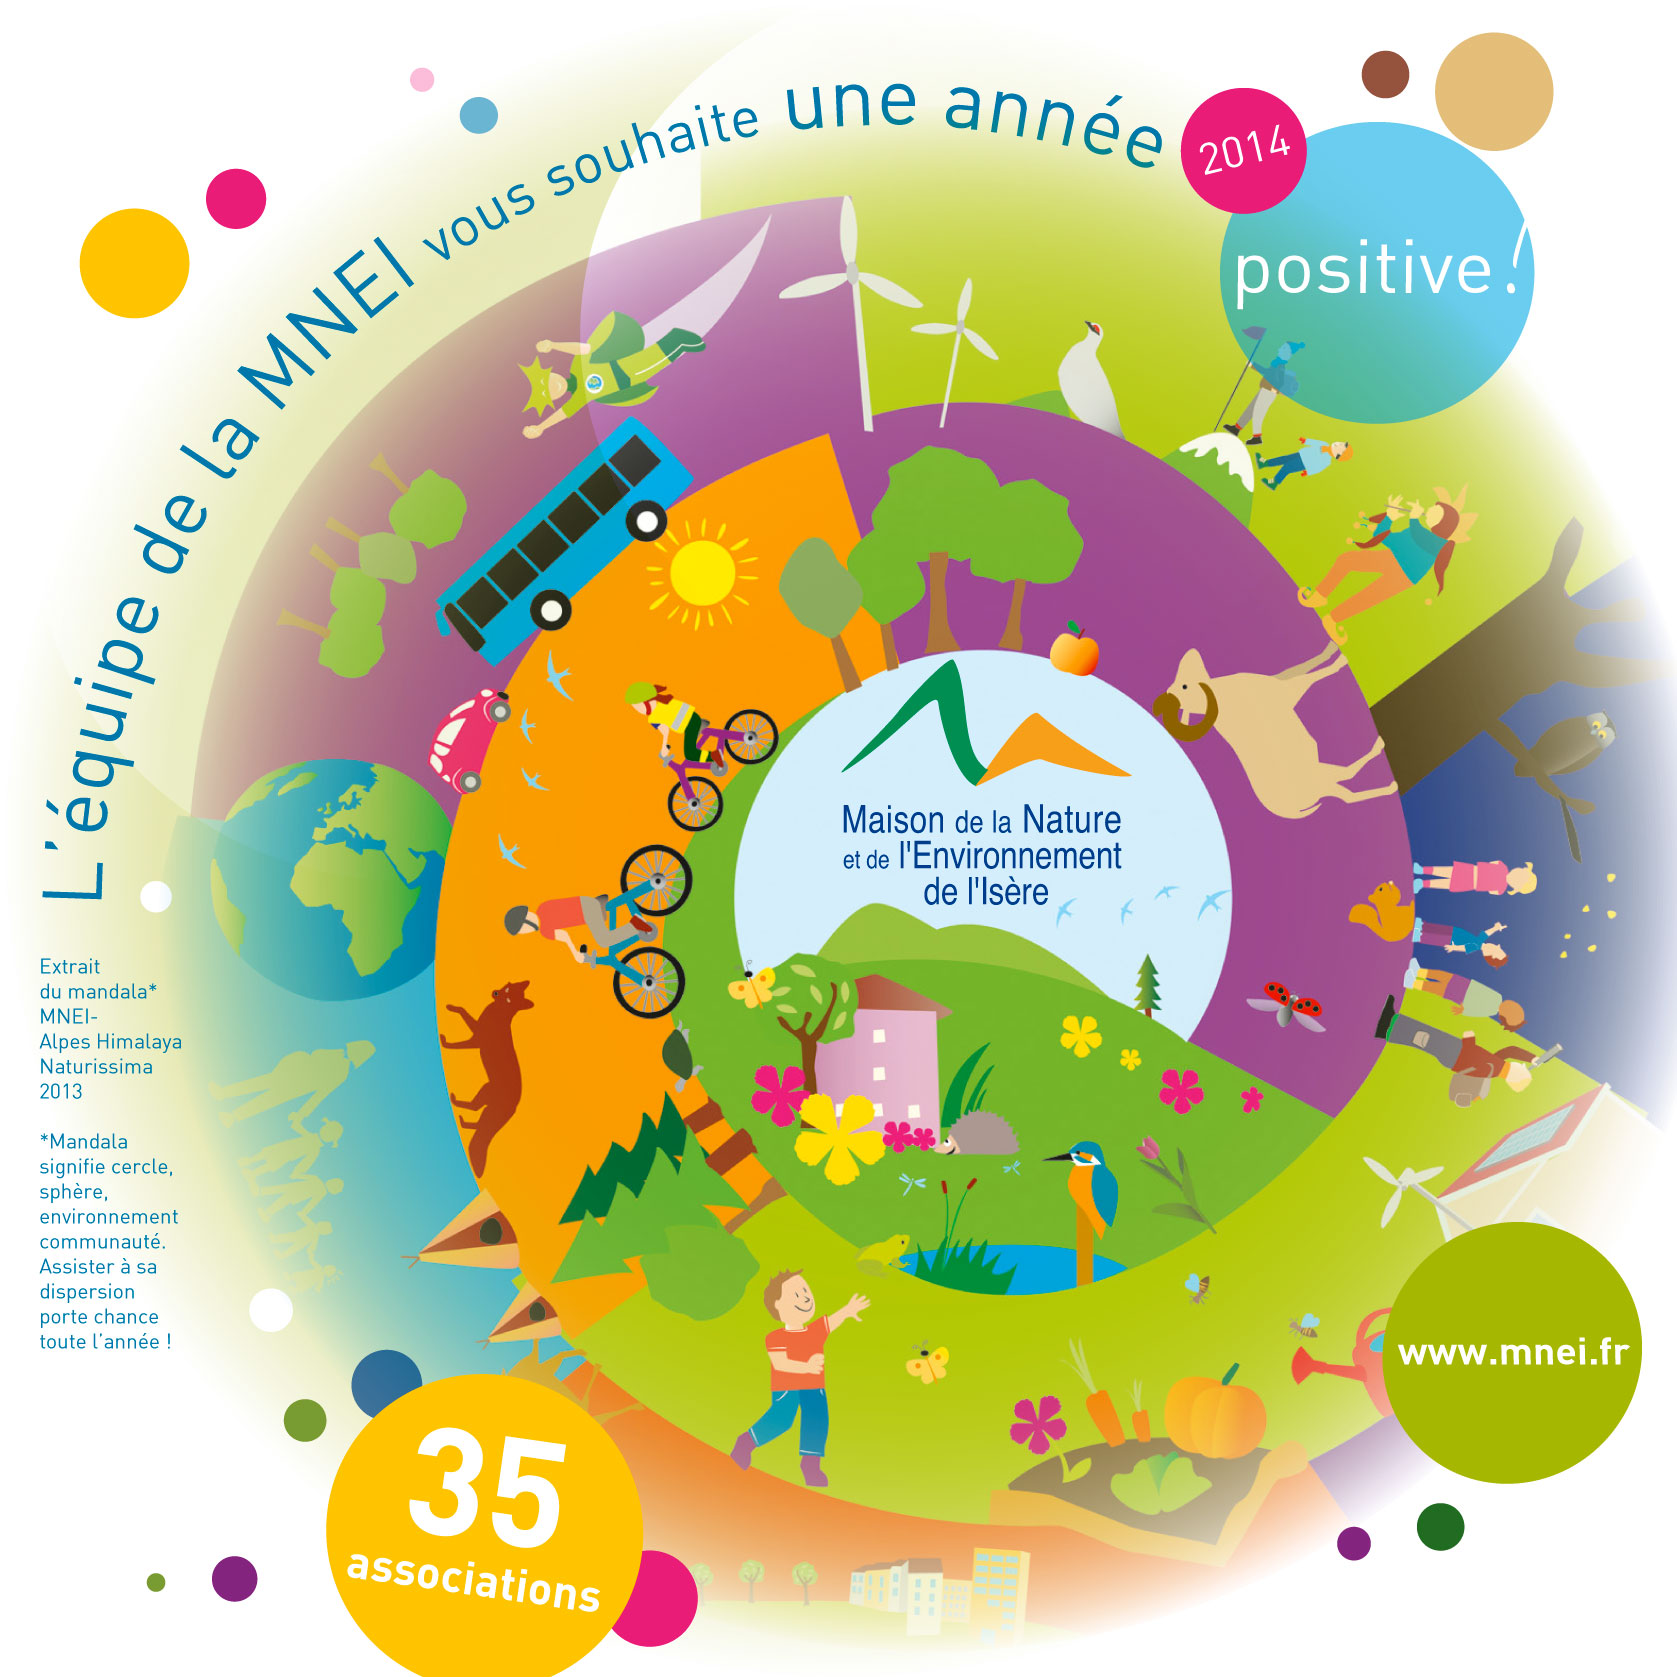 1401_MNEI_CarteVoeux_R300web